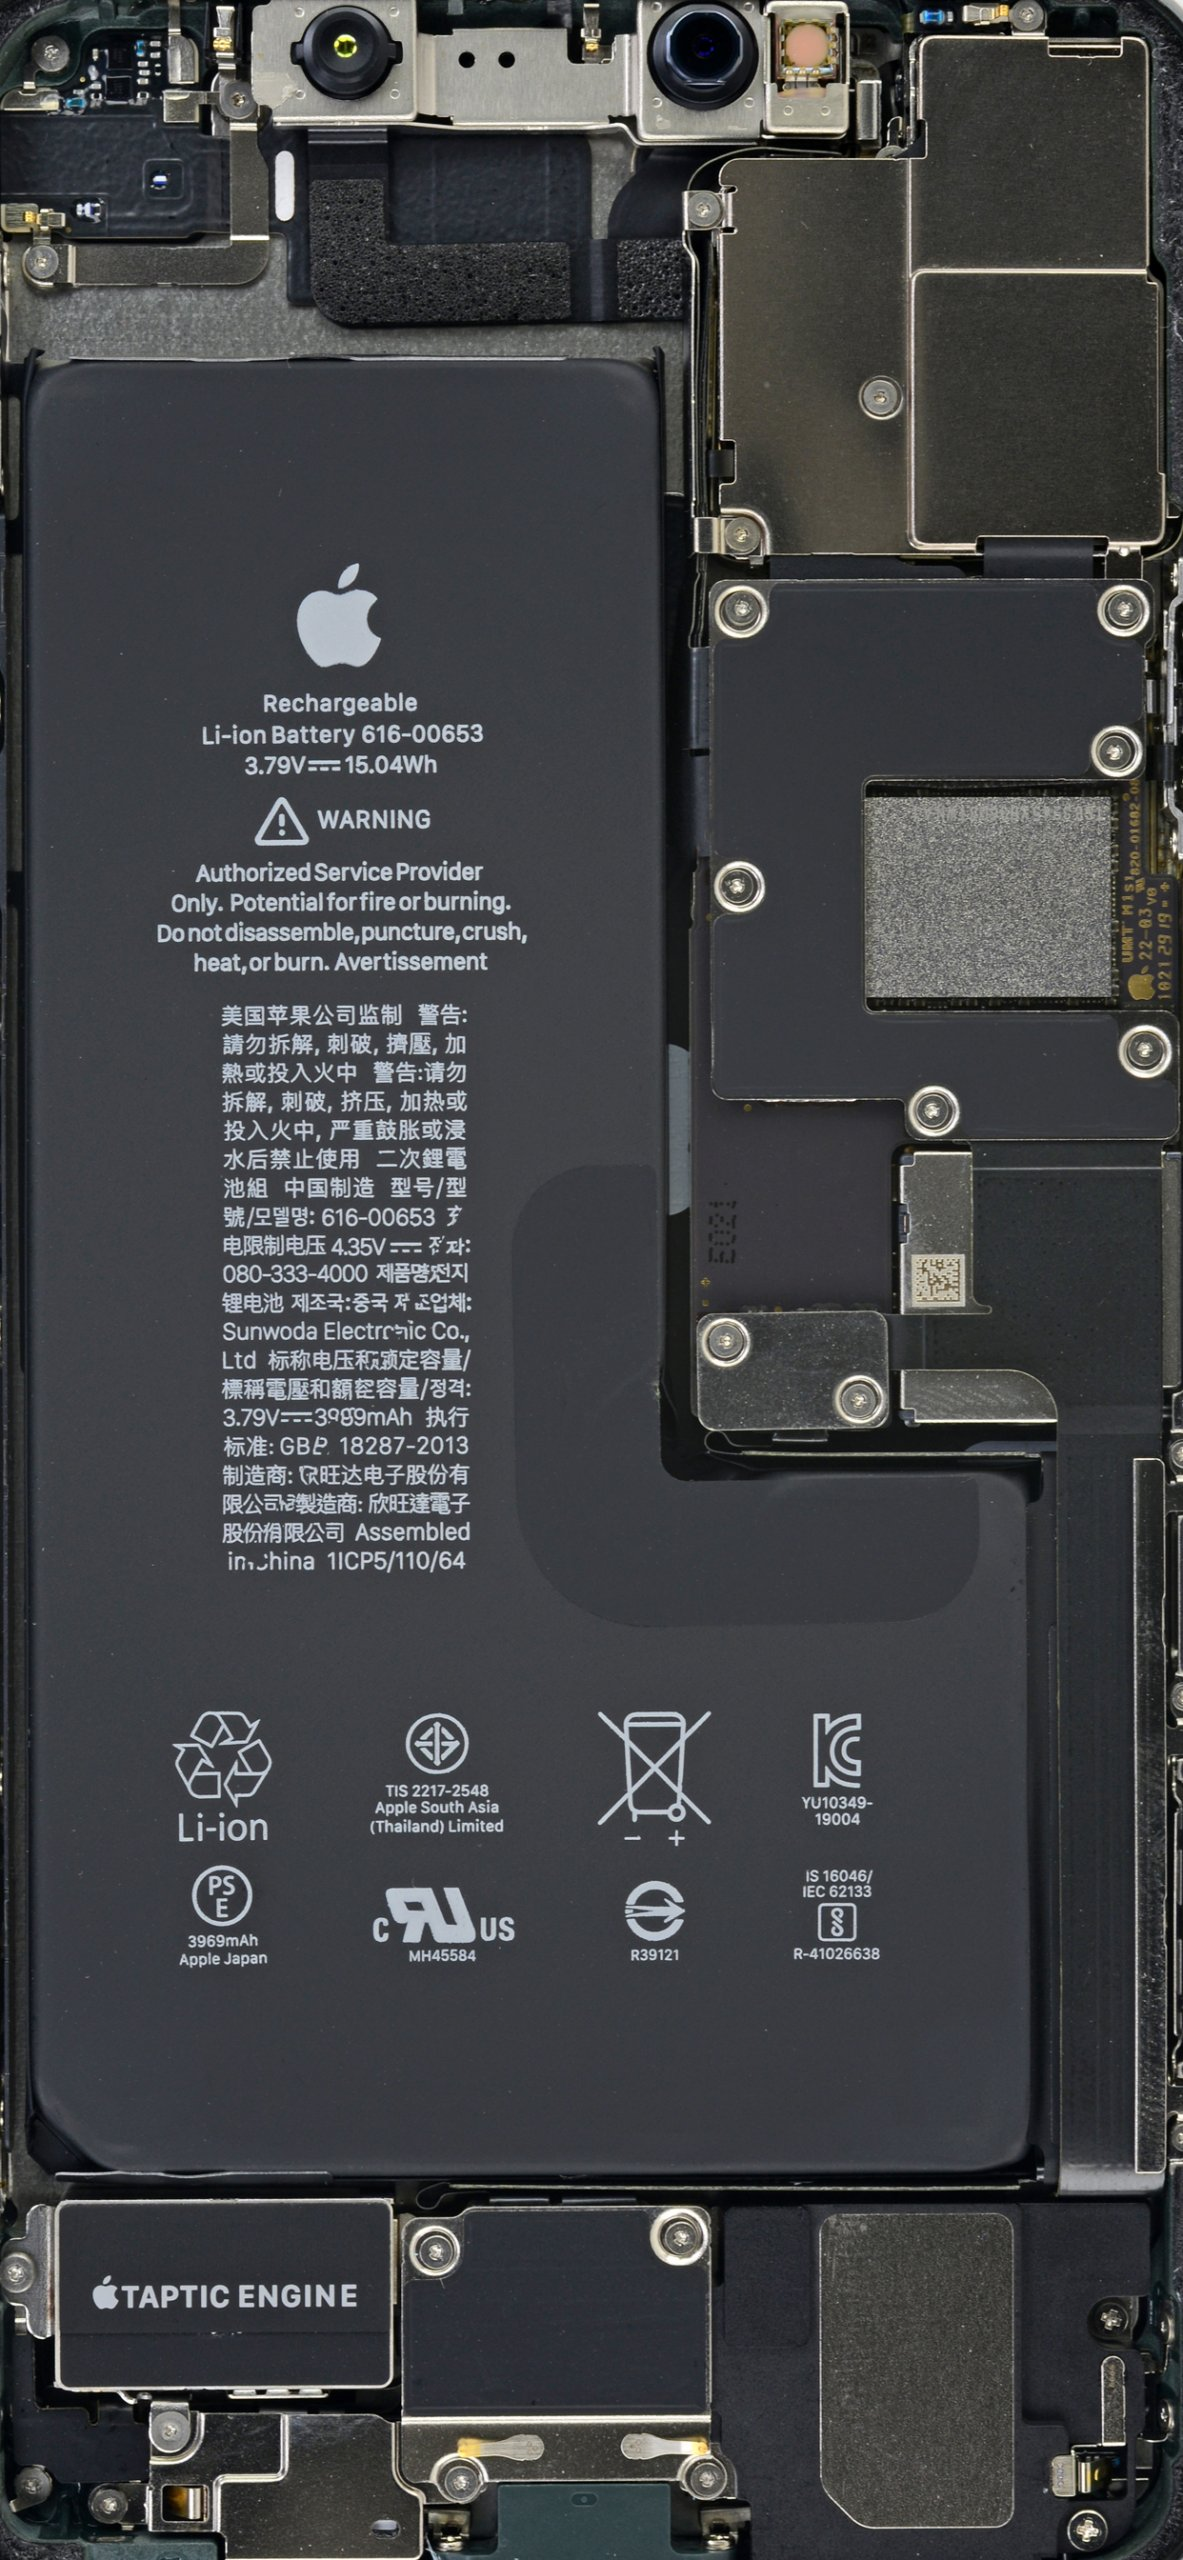 The internals of an iPhone 11 Pro Max.